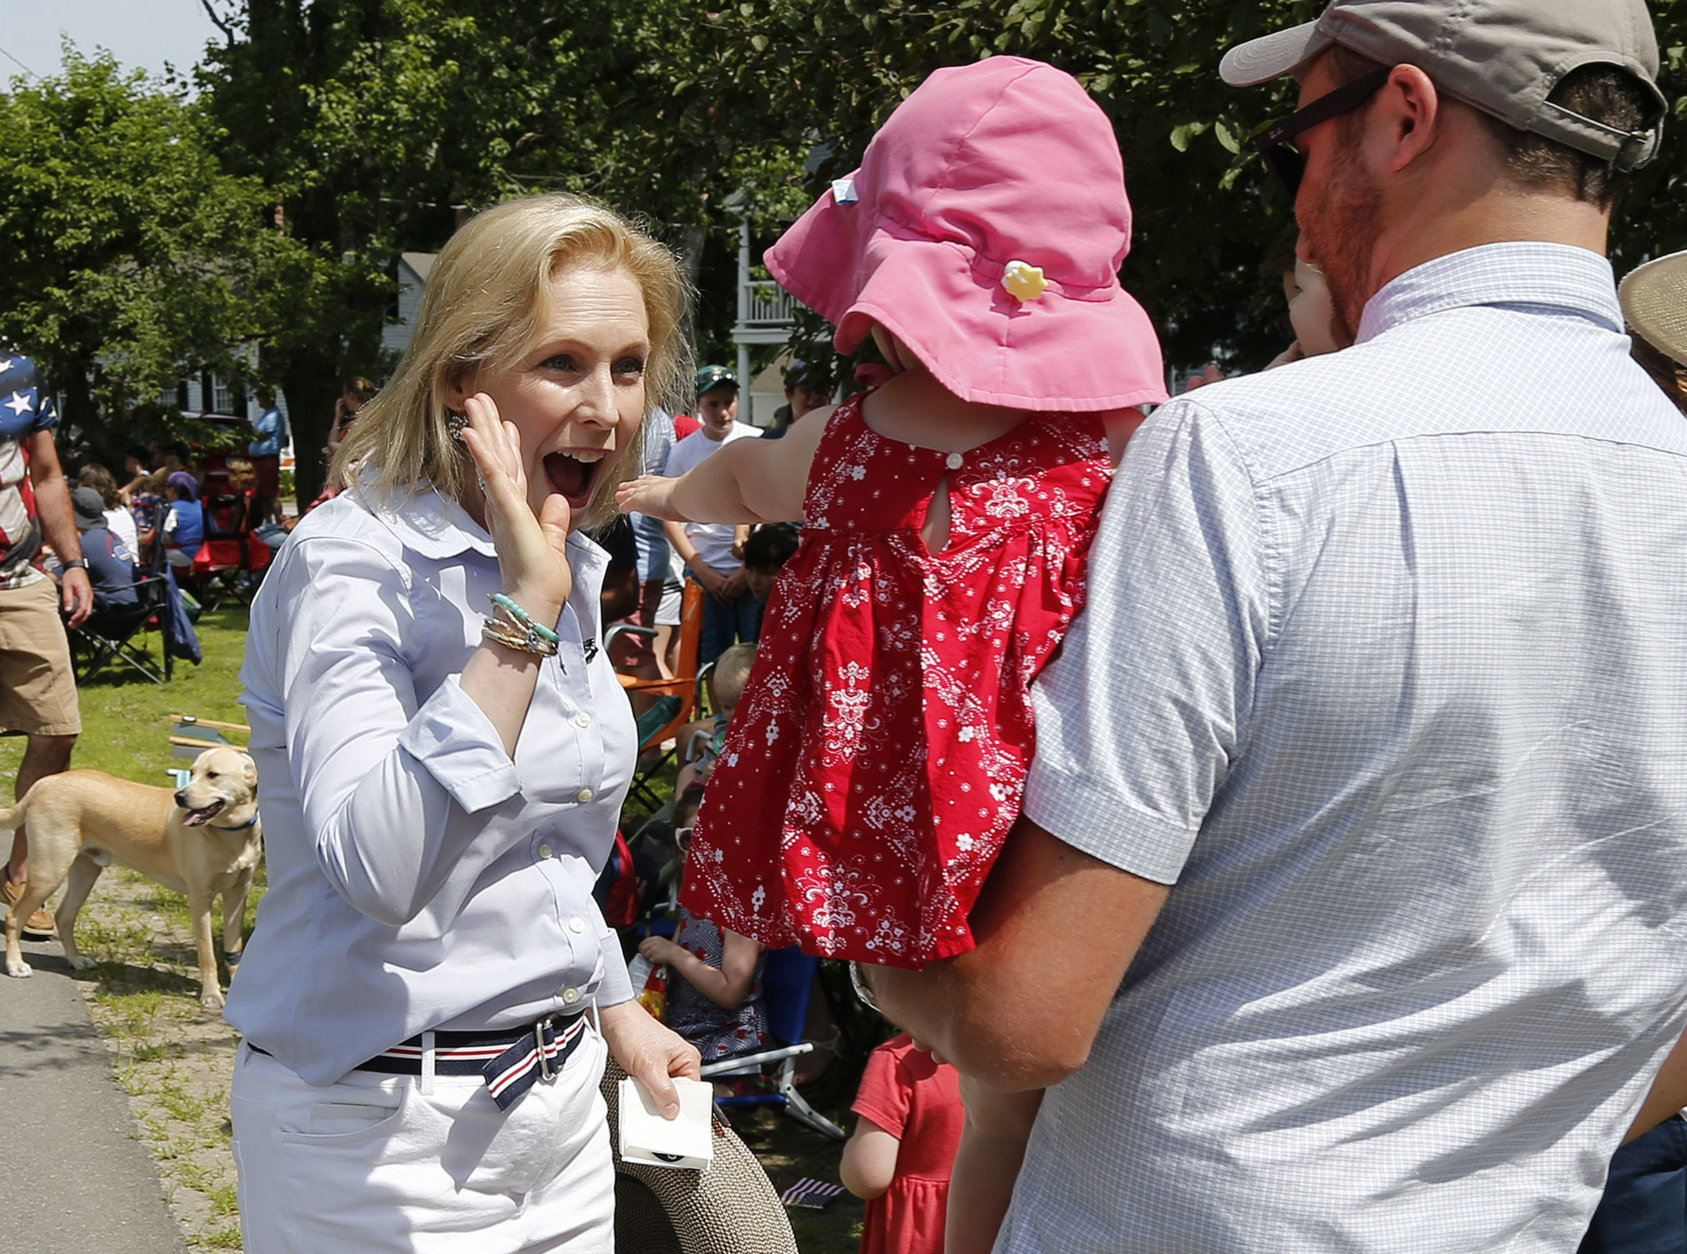 Democratic presidential candidate Sen. Kirsten Gillibrand, D-N.Y., gives a high-five to a child along the route during the Fourth of July Parade, Thursday, July 4, 2019, in Amherst. (AP Photo/Mary Schwalm)